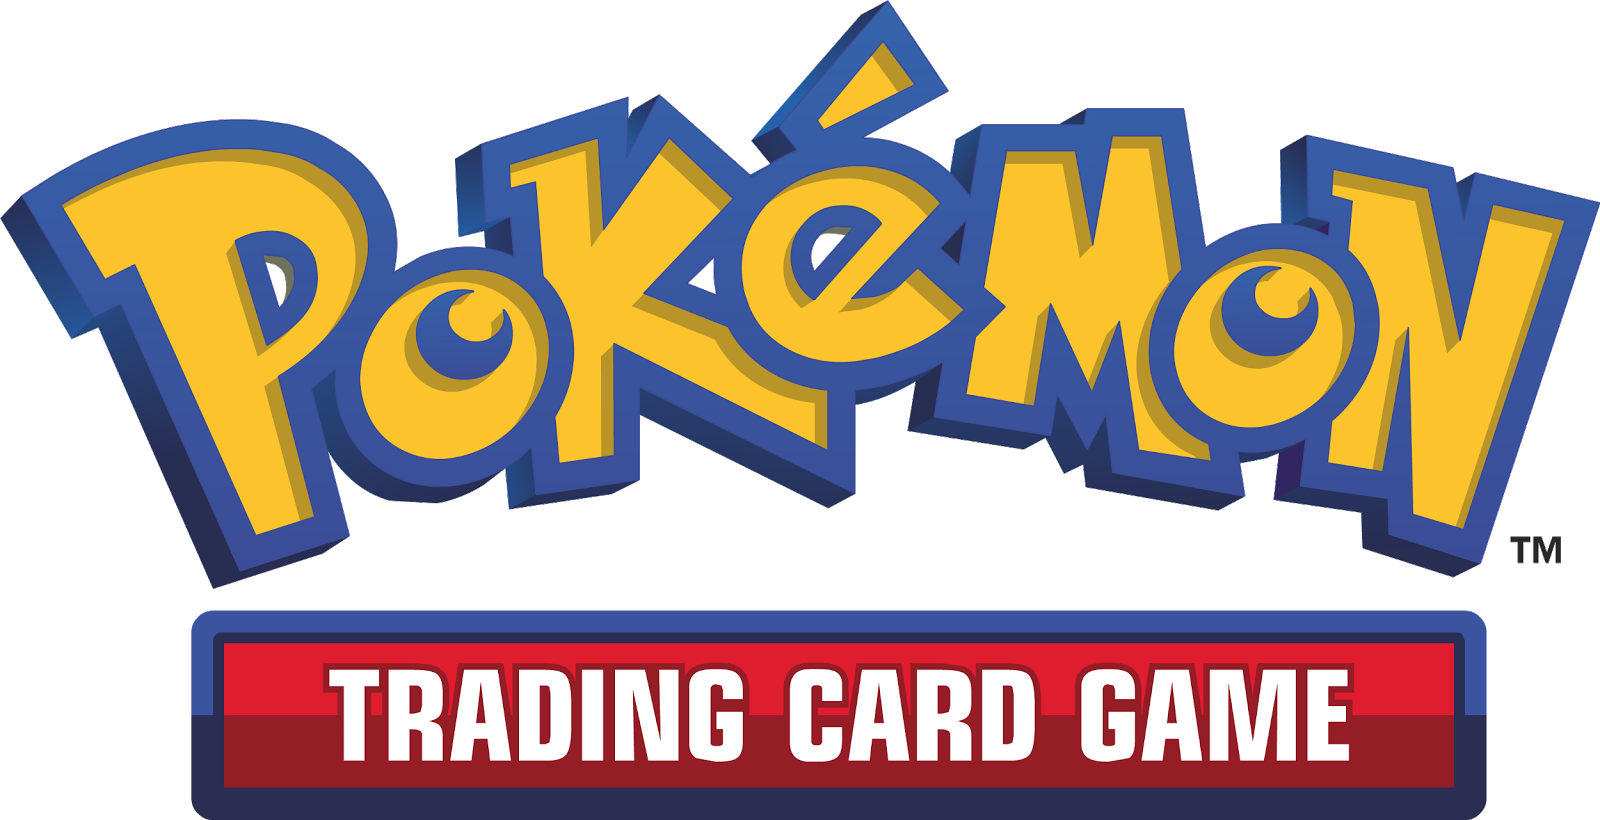 Pokemon Trading Card Game G C Entertainment System